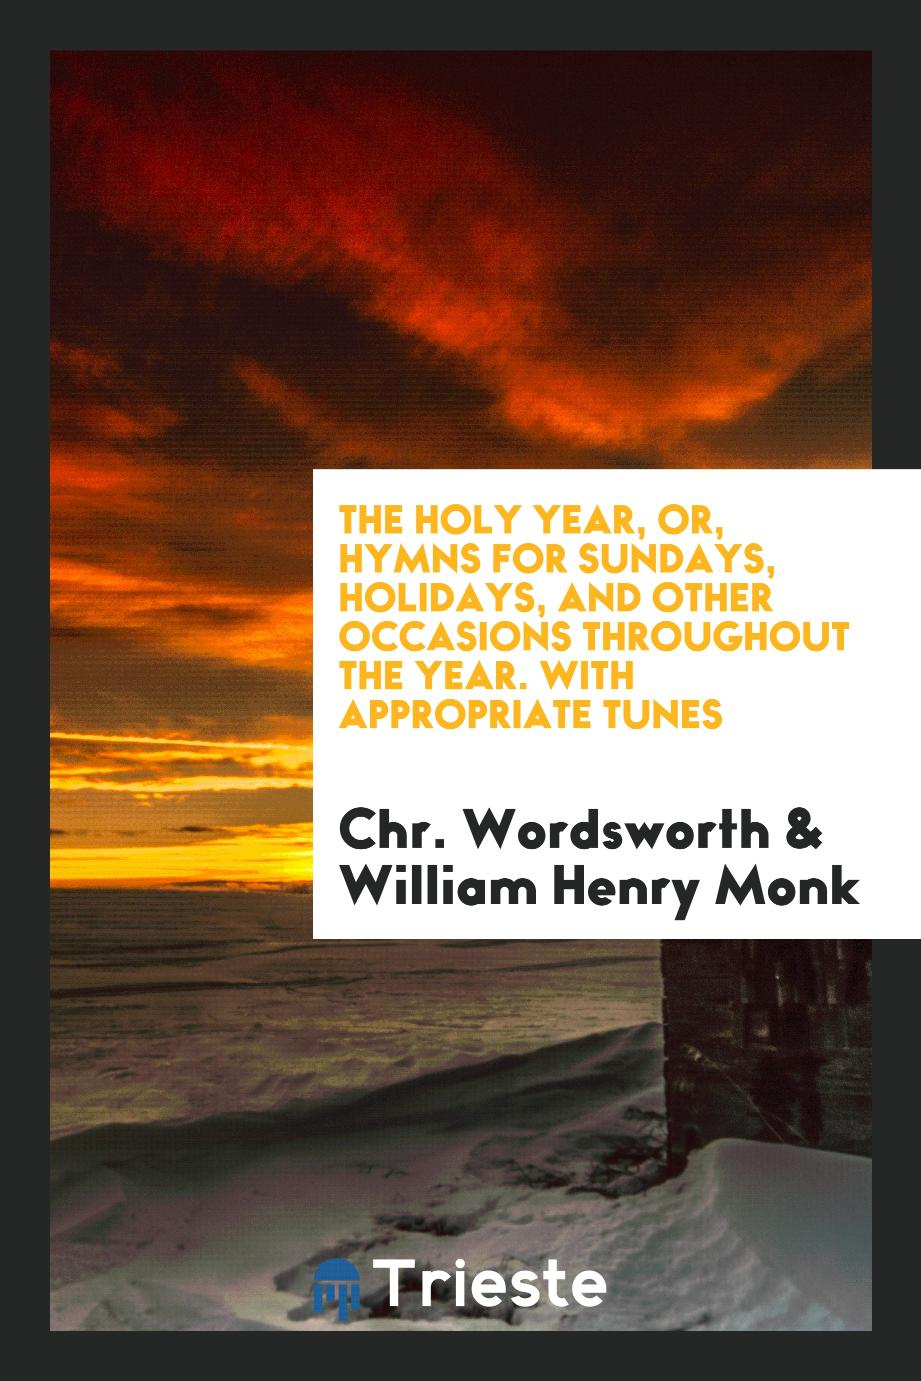 The Holy Year, or, Hymns for Sundays, Holidays, and Other Occasions throughout the Year. With Appropriate Tunes